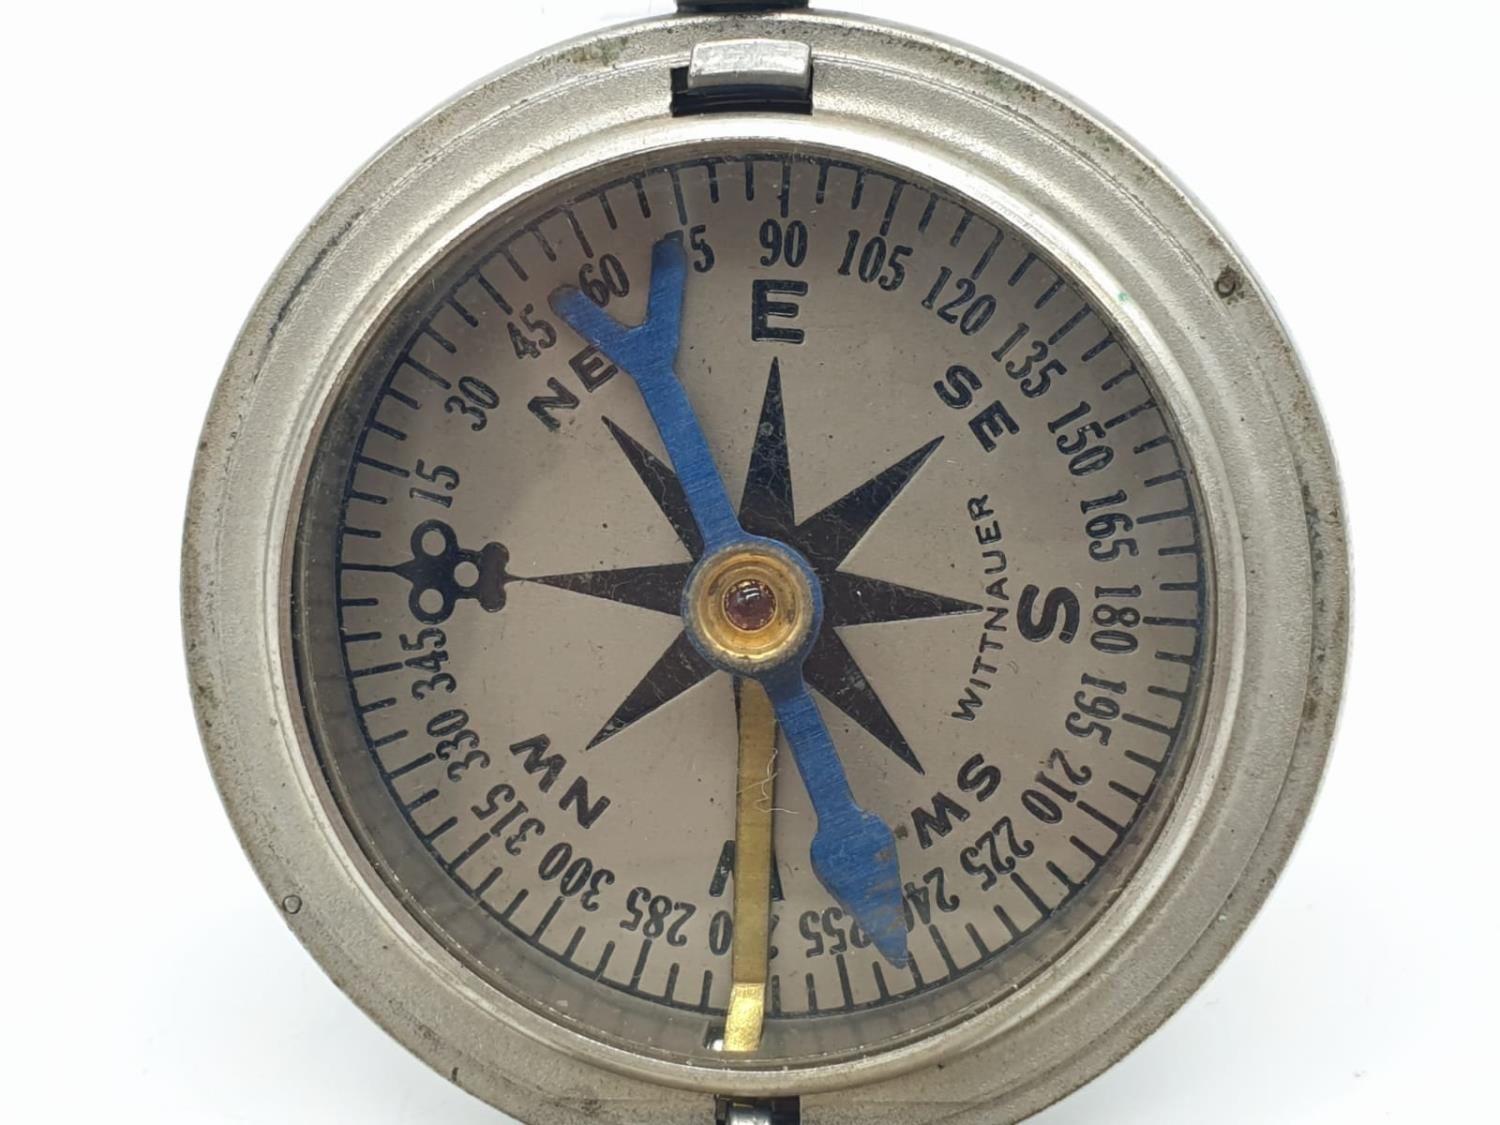 WW1 US Army Pocket Watch Compass circa1917. Maker: Wittnauer. - Image 2 of 5